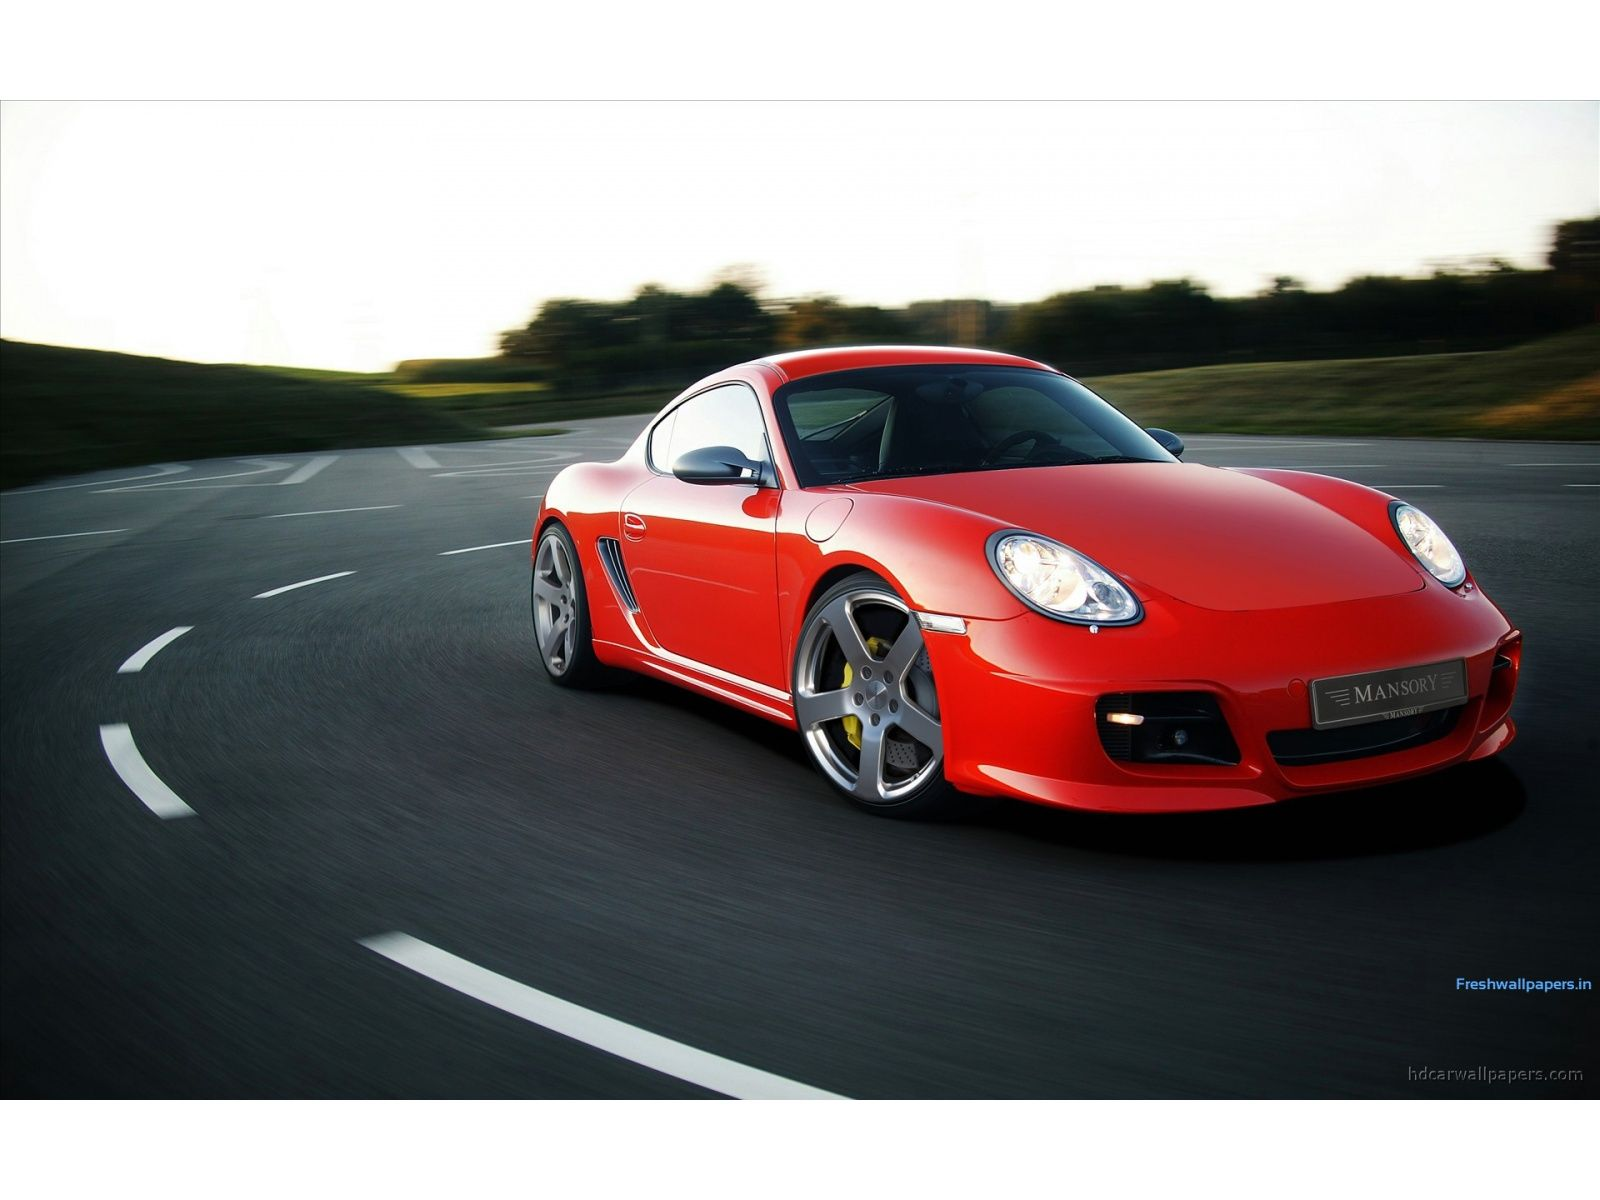 Mansory Porsche Cayman Boxster Exotic Car Image Of